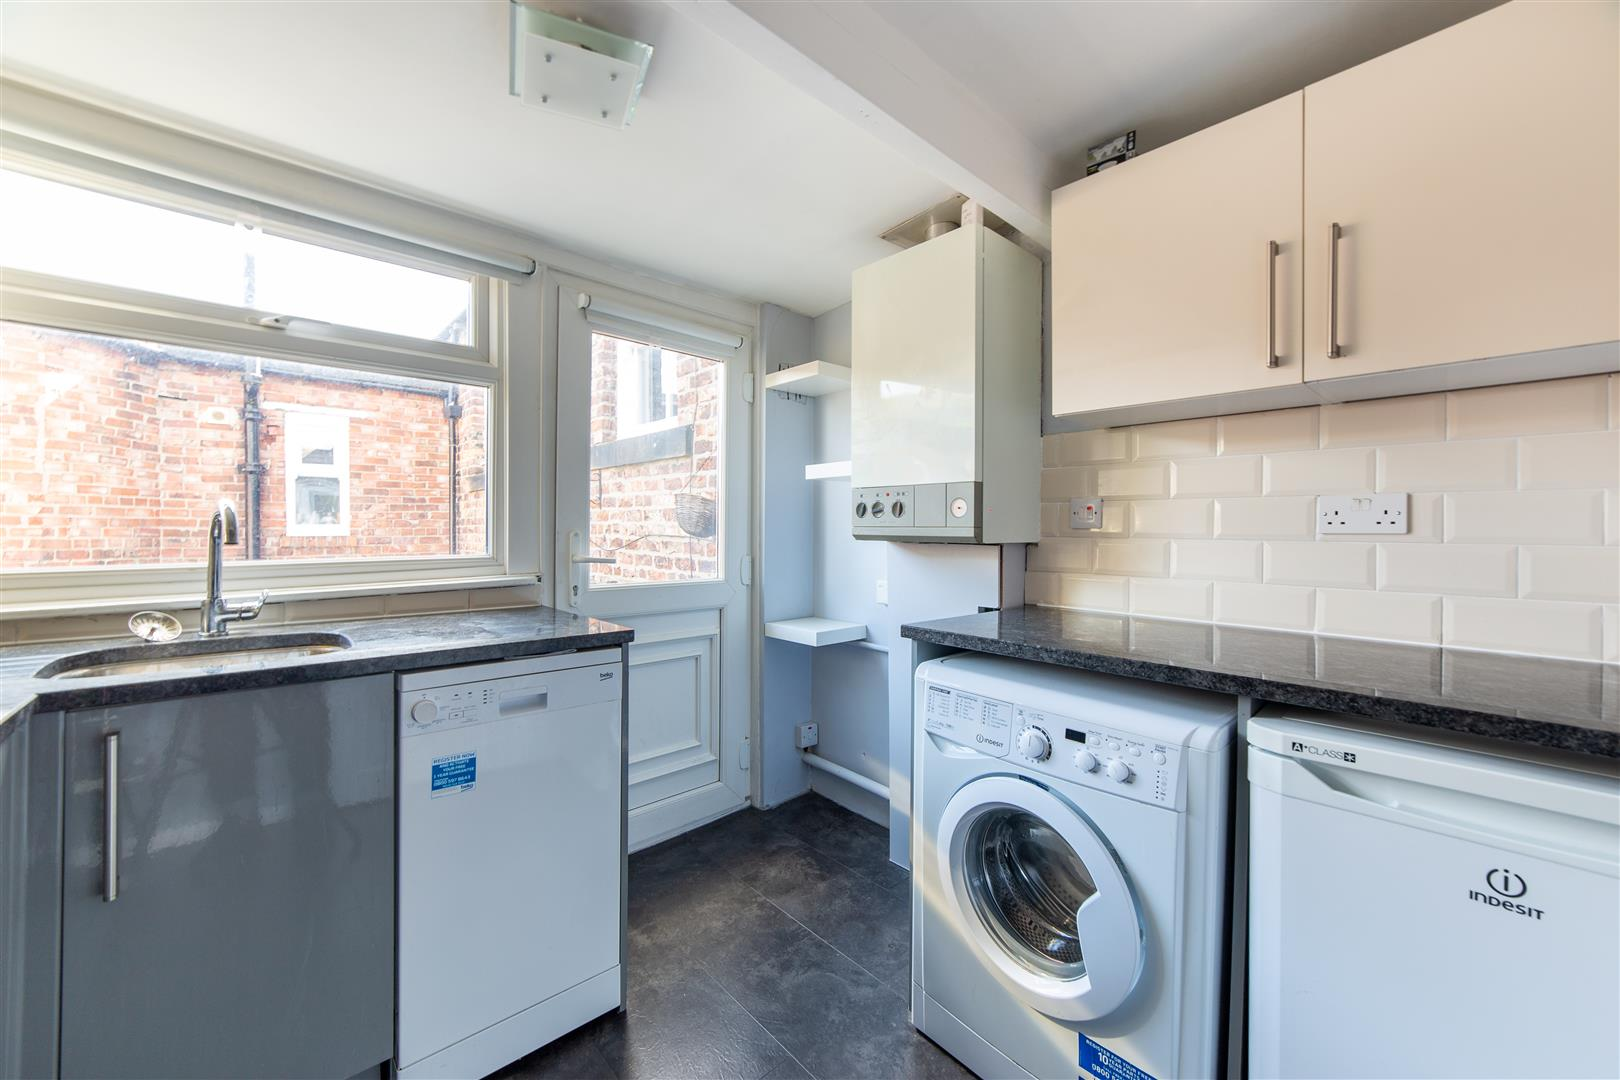 2 bed flat to rent in Newcastle Upon Tyne, NE2 3AN  - Property Image 1